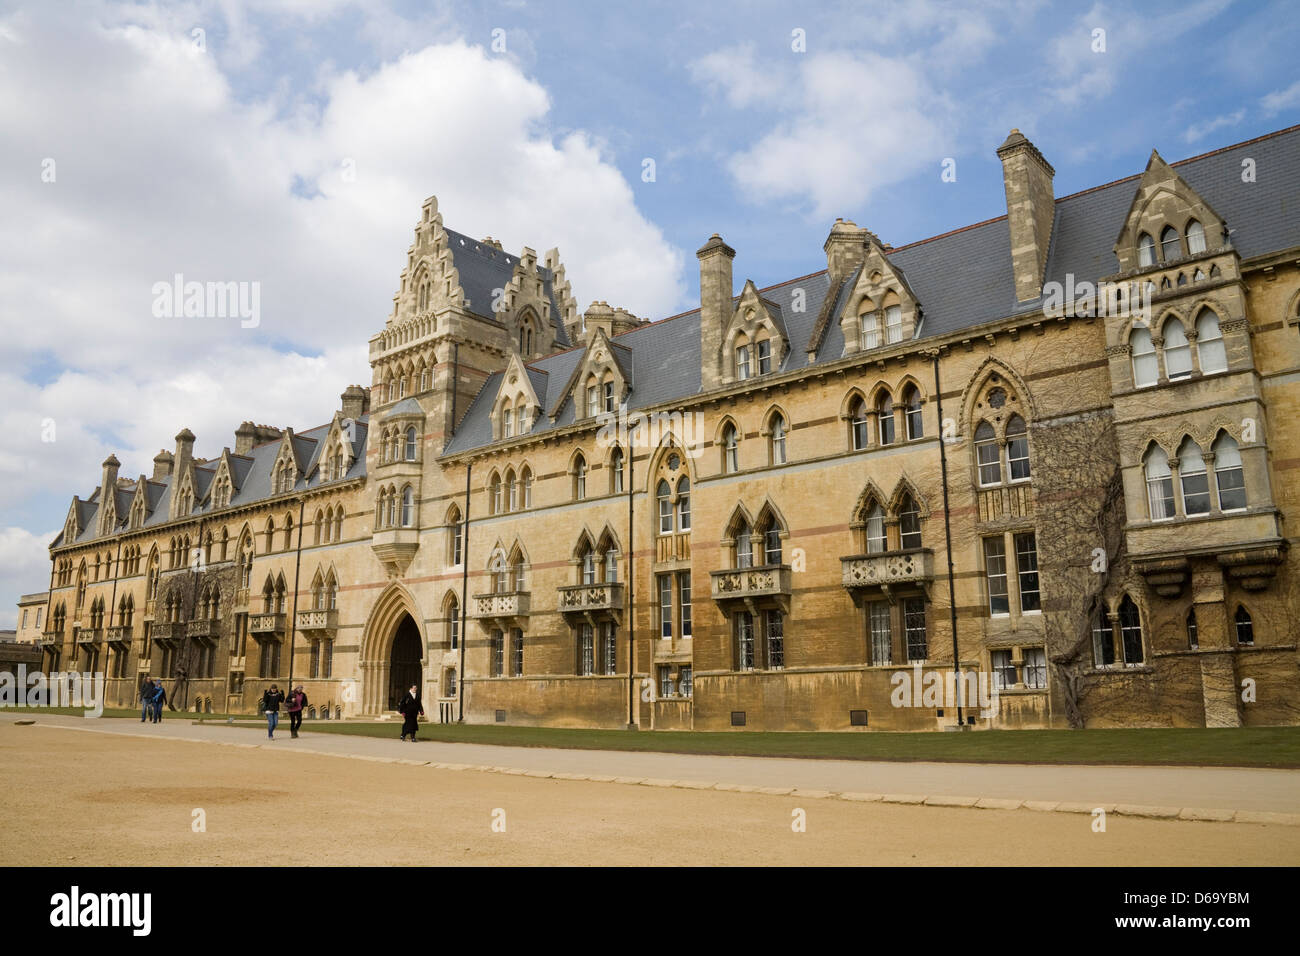 Oxford Oxfordshire Meadow Building main Meadow Gate entrance of Christ Church College and Cathedral off Broad Walk - Stock Image